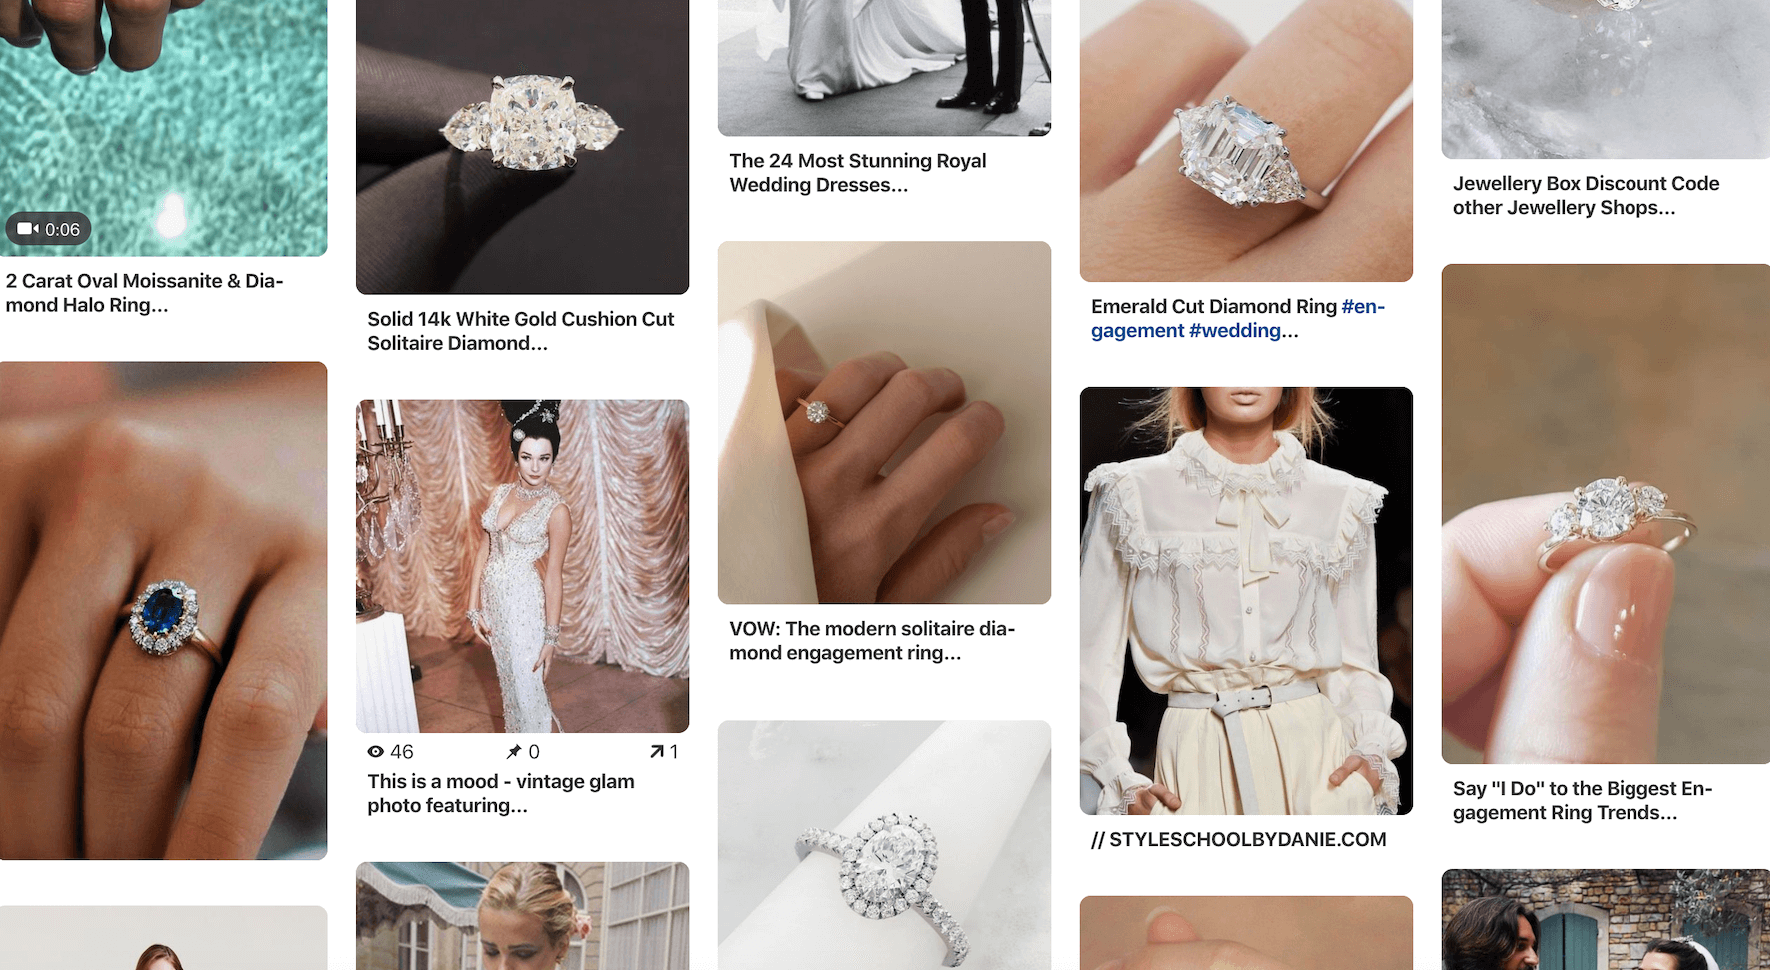 Pinterest is a great place to search for engagement ring inspiration